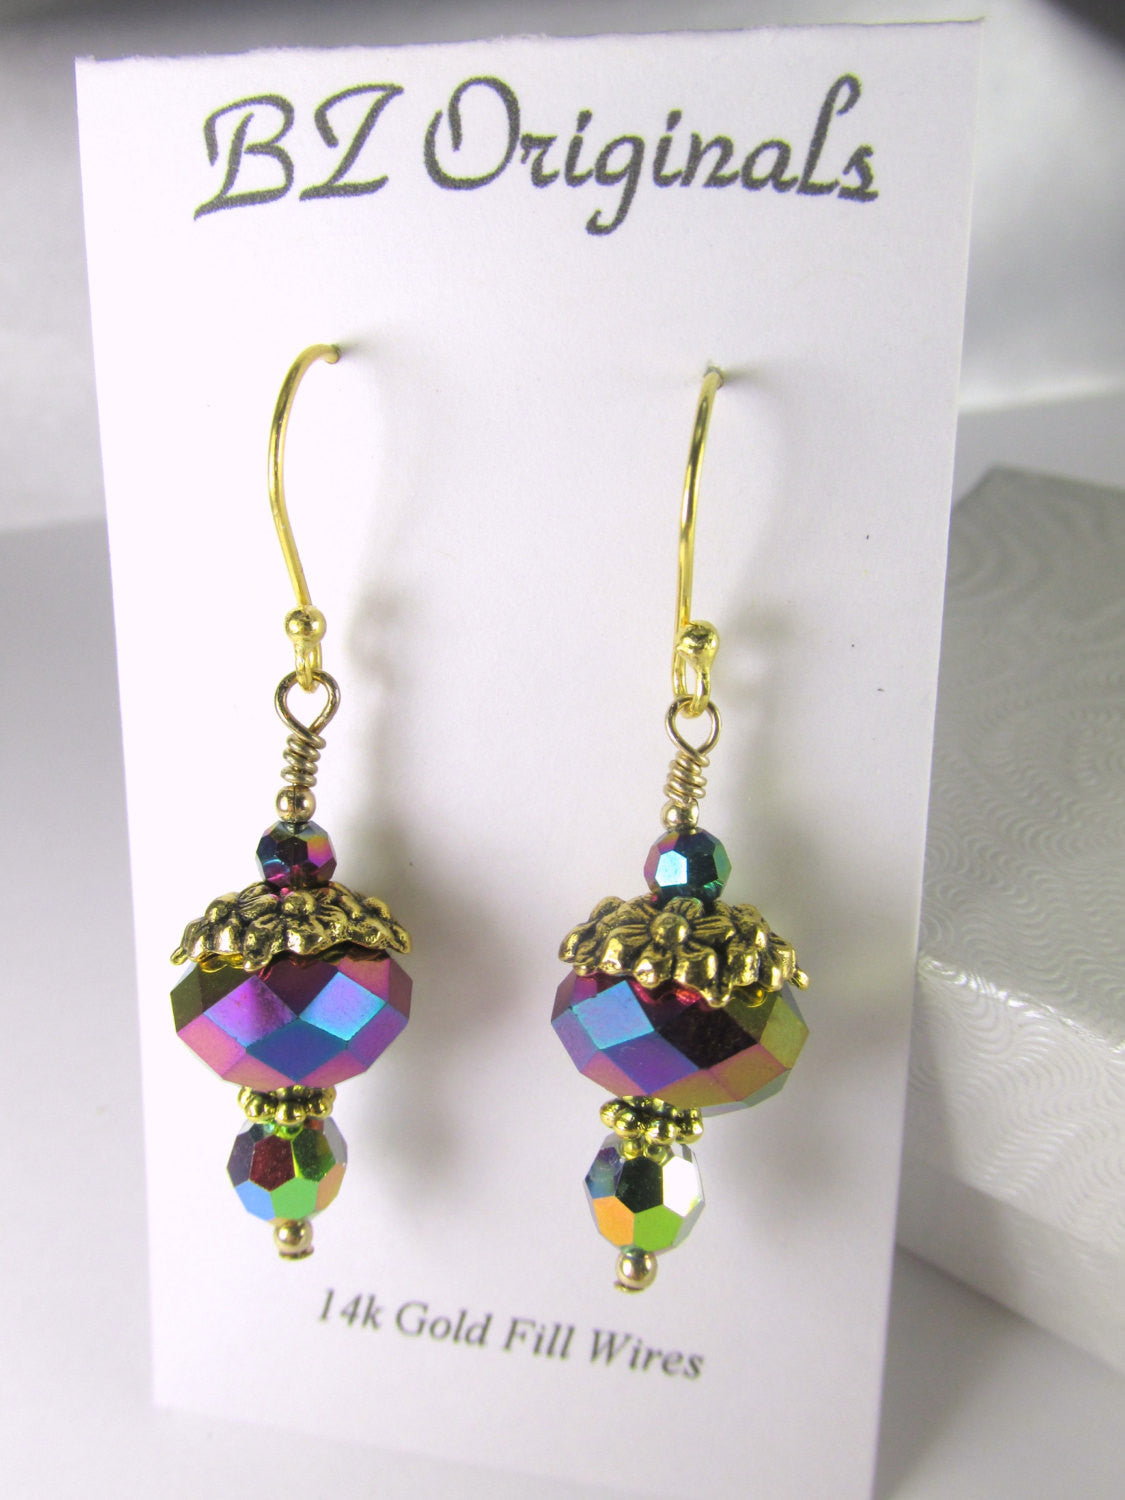 Vitrail Medium Earrings with Gold Floral Bead Caps on 22k gold Bali Wires - Odyssey Creations